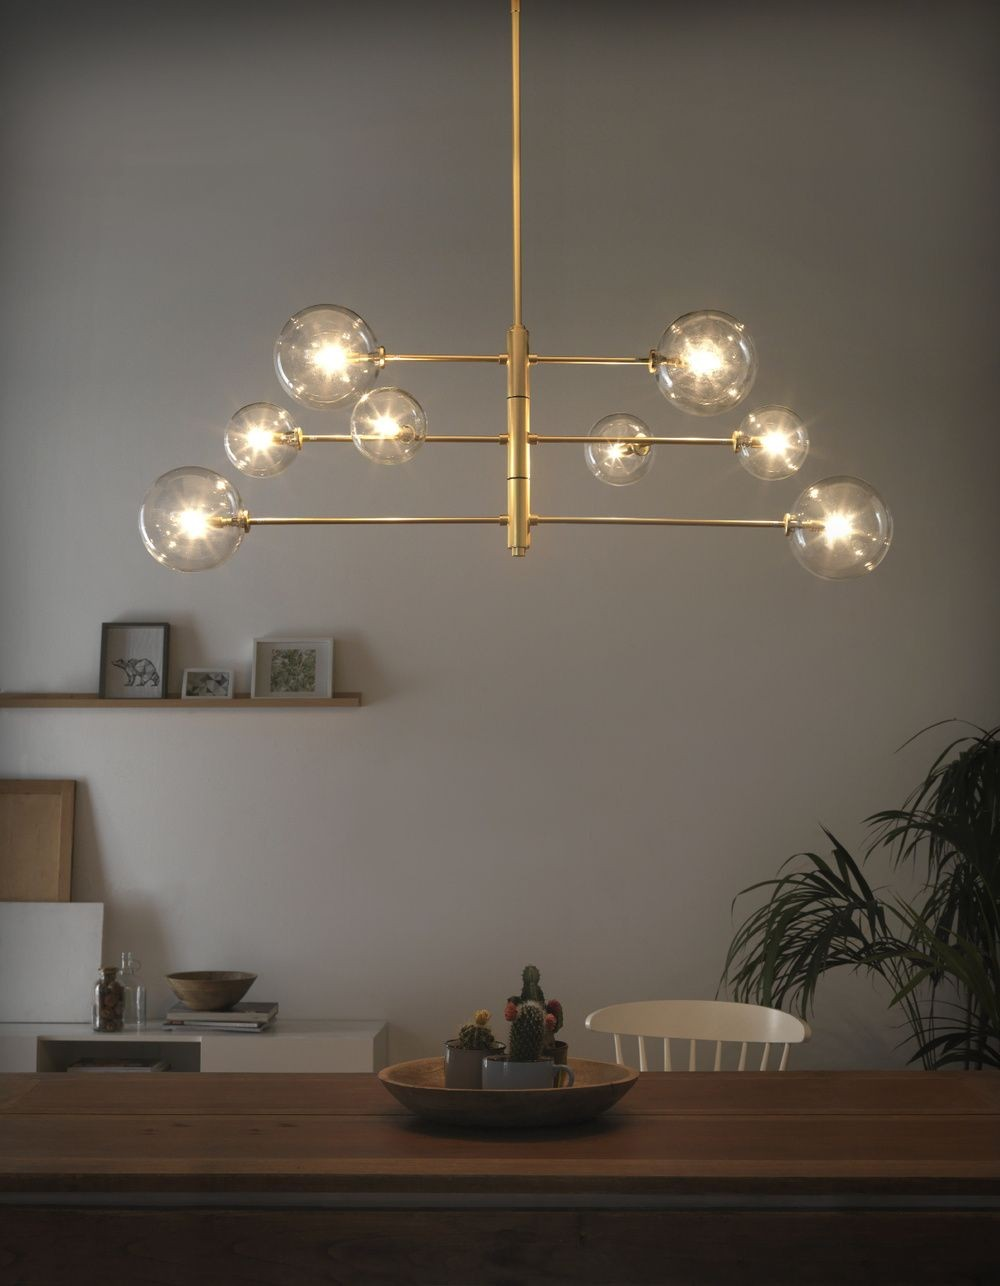 Improve Your Home Decoration with Marvelous Lighting Trends for 2020 1 lighting trends for 2020 Improve Your Home Decoration with Marvelous Lighting Trends for 2020 Improve Your Home Decoration with Marvelous Lighting Trends for 2020 1